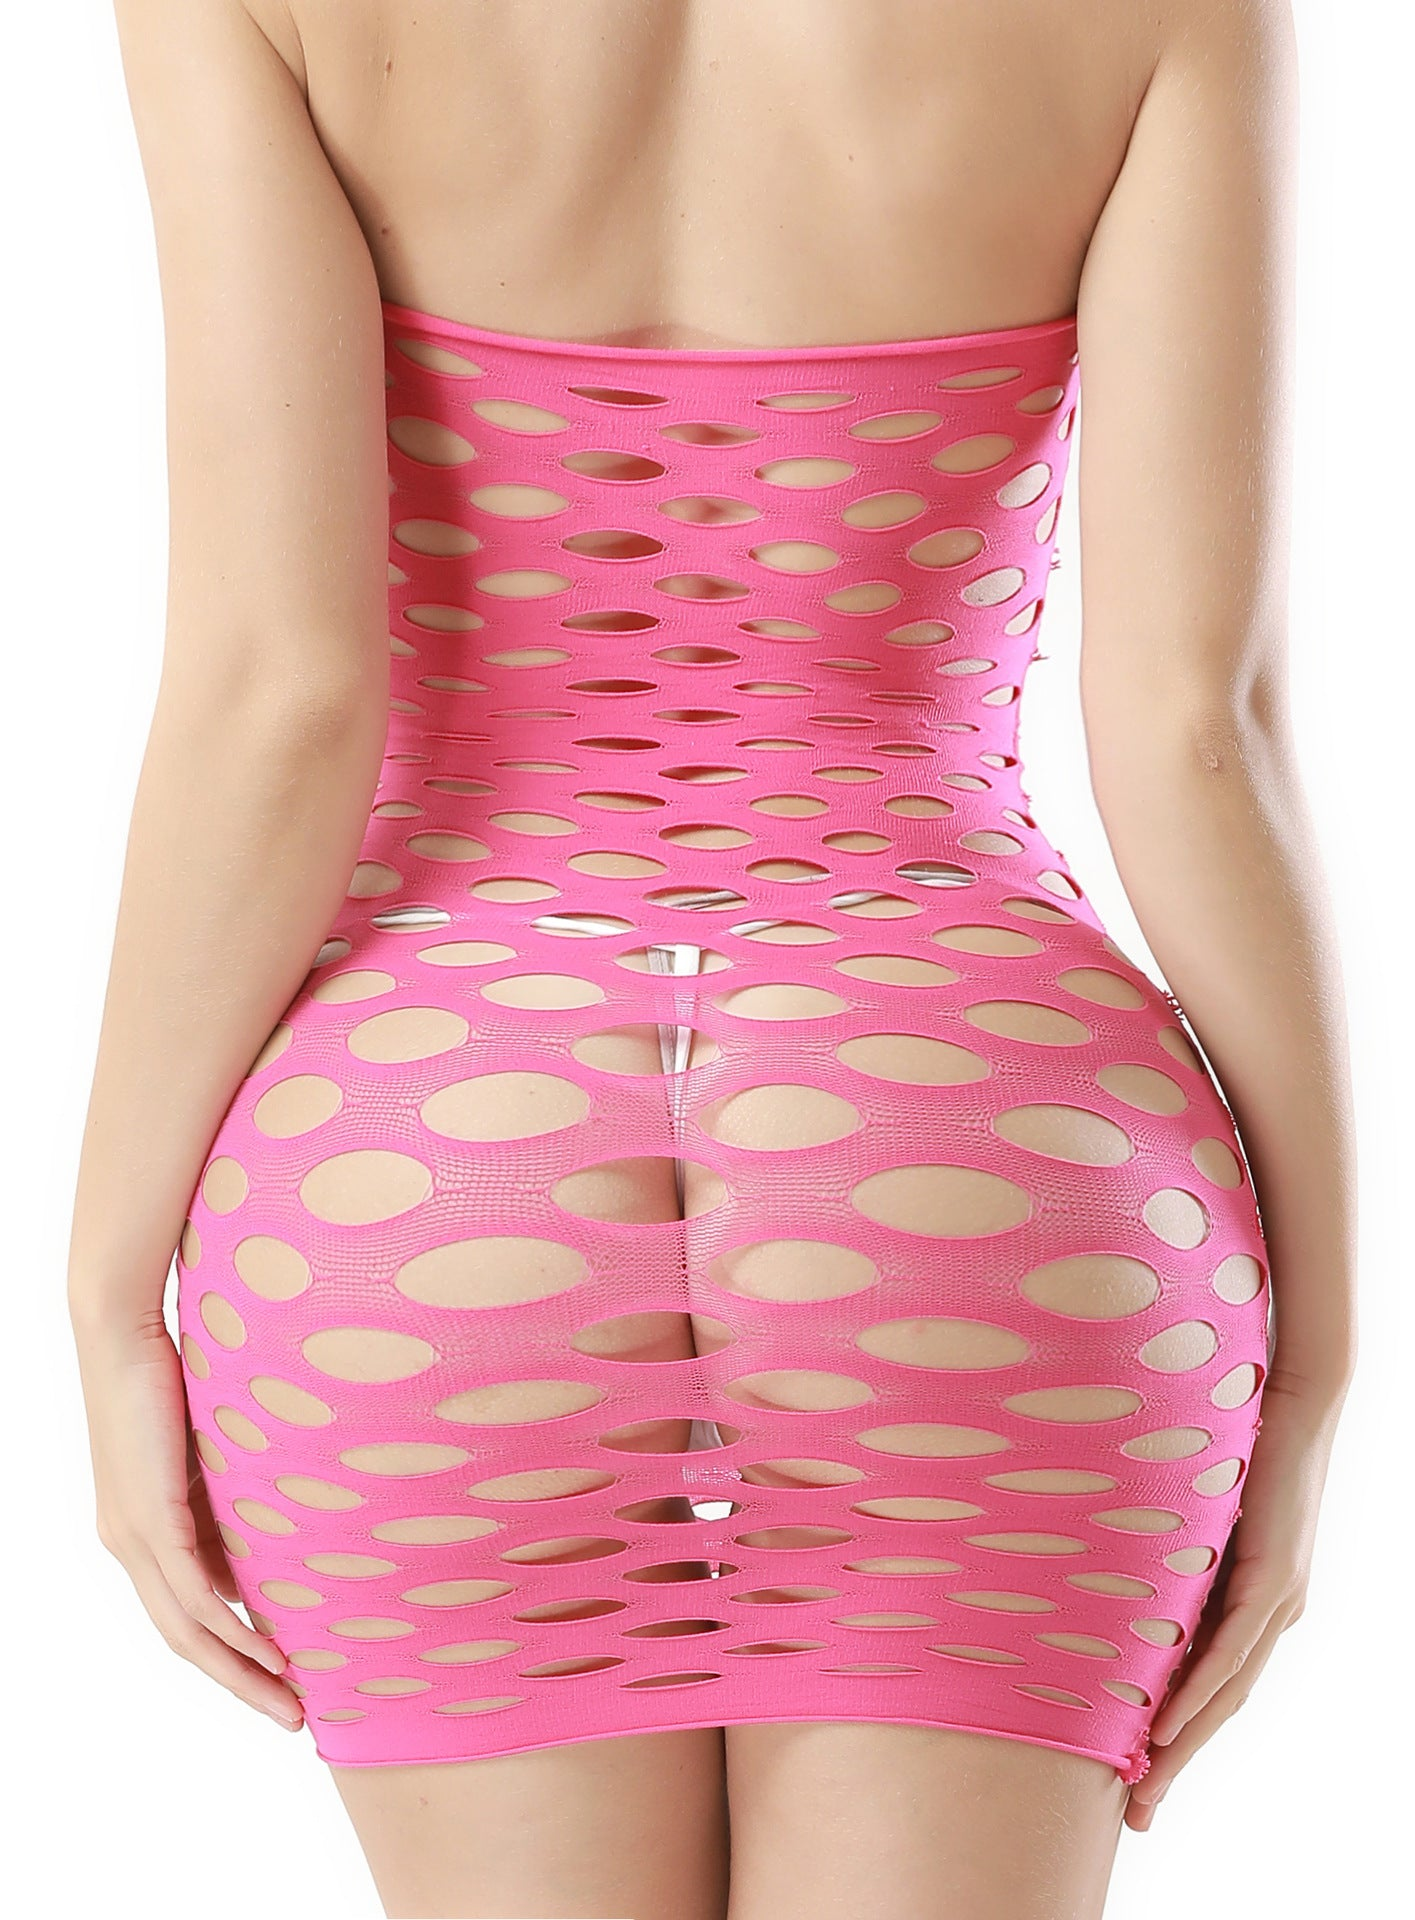 2019isheaby nightclub sexy hole short skirt pajamas factory direct hollow sexy lingerie female 8927